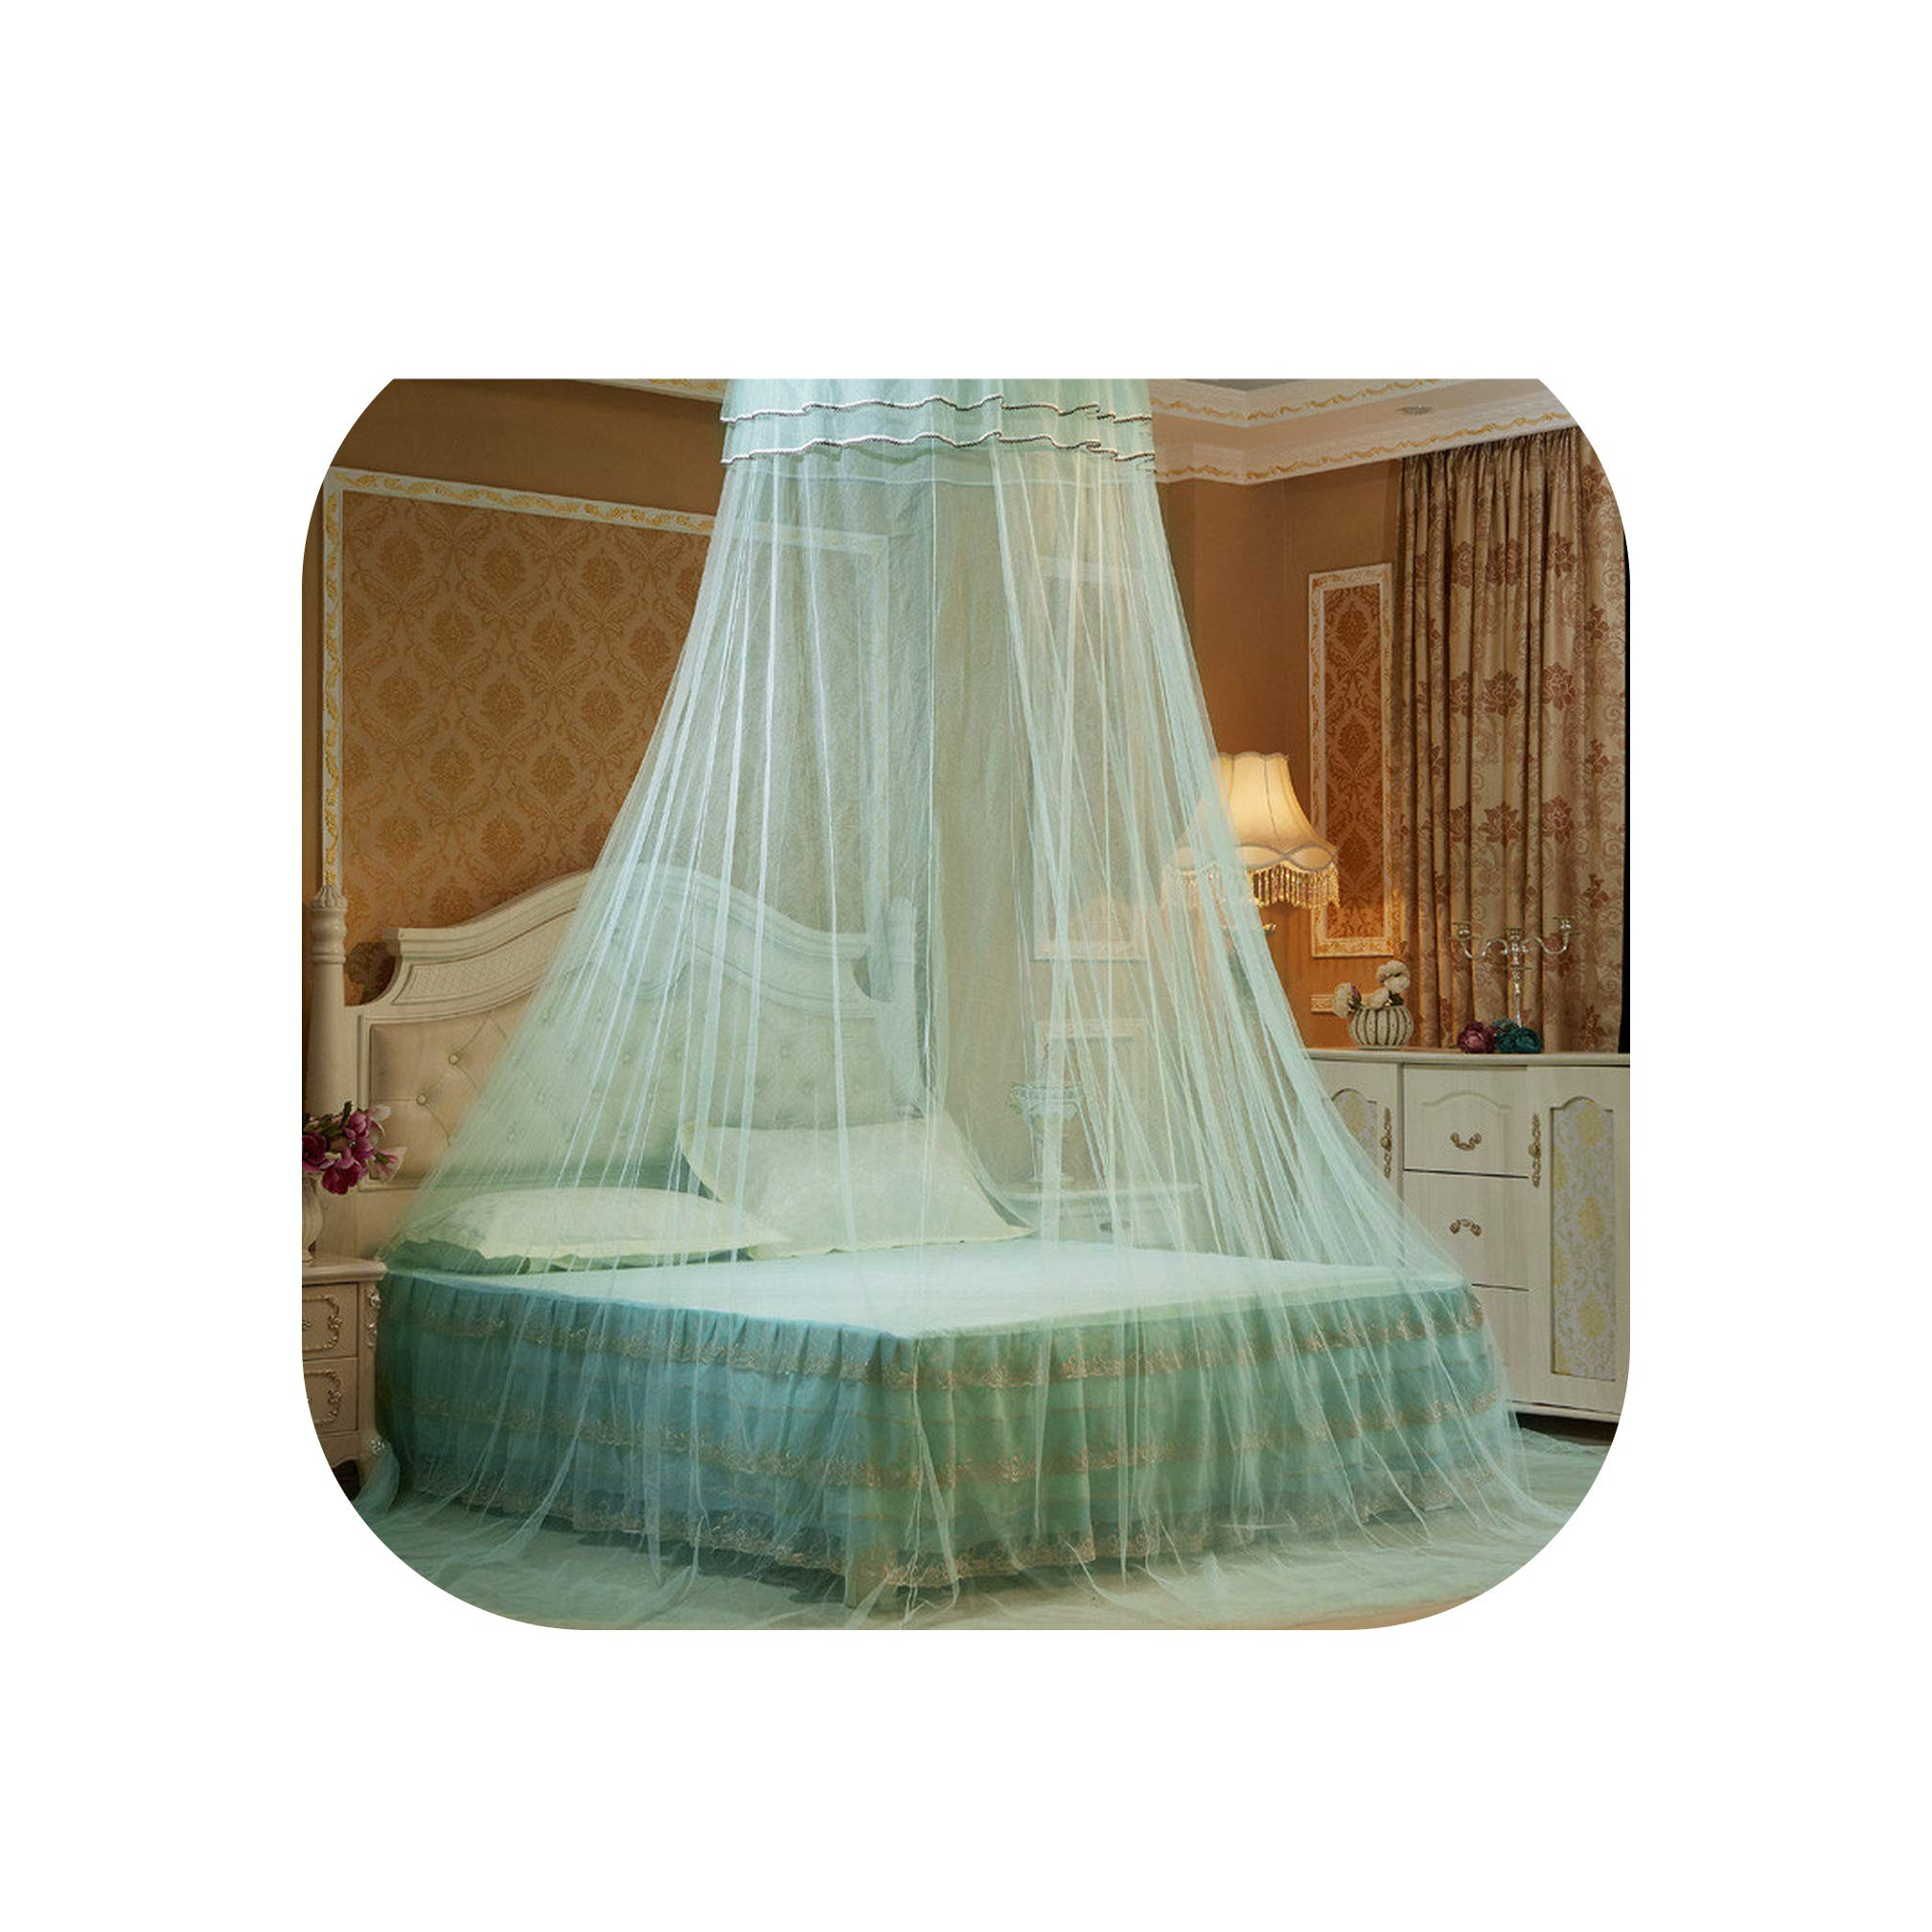 Arrival Mosquito Net for Bed Home Bed Canopy Mosquito Adults Double Bed Mosquito Net shuilan 1.2m (4 feet) Bed